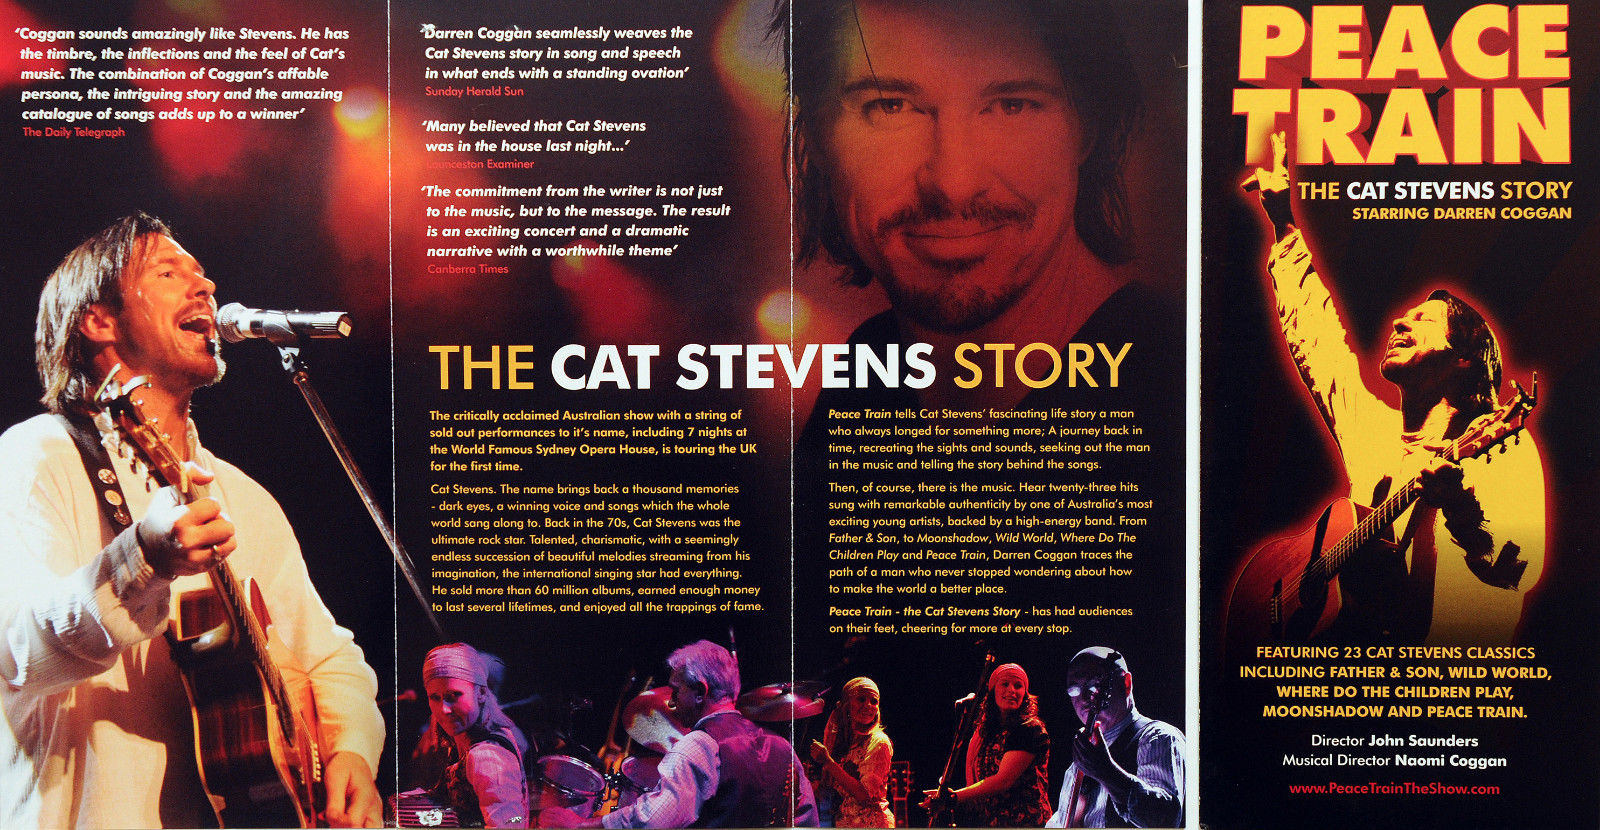 Peace Train The Cat Stevens Story Cat Stevens